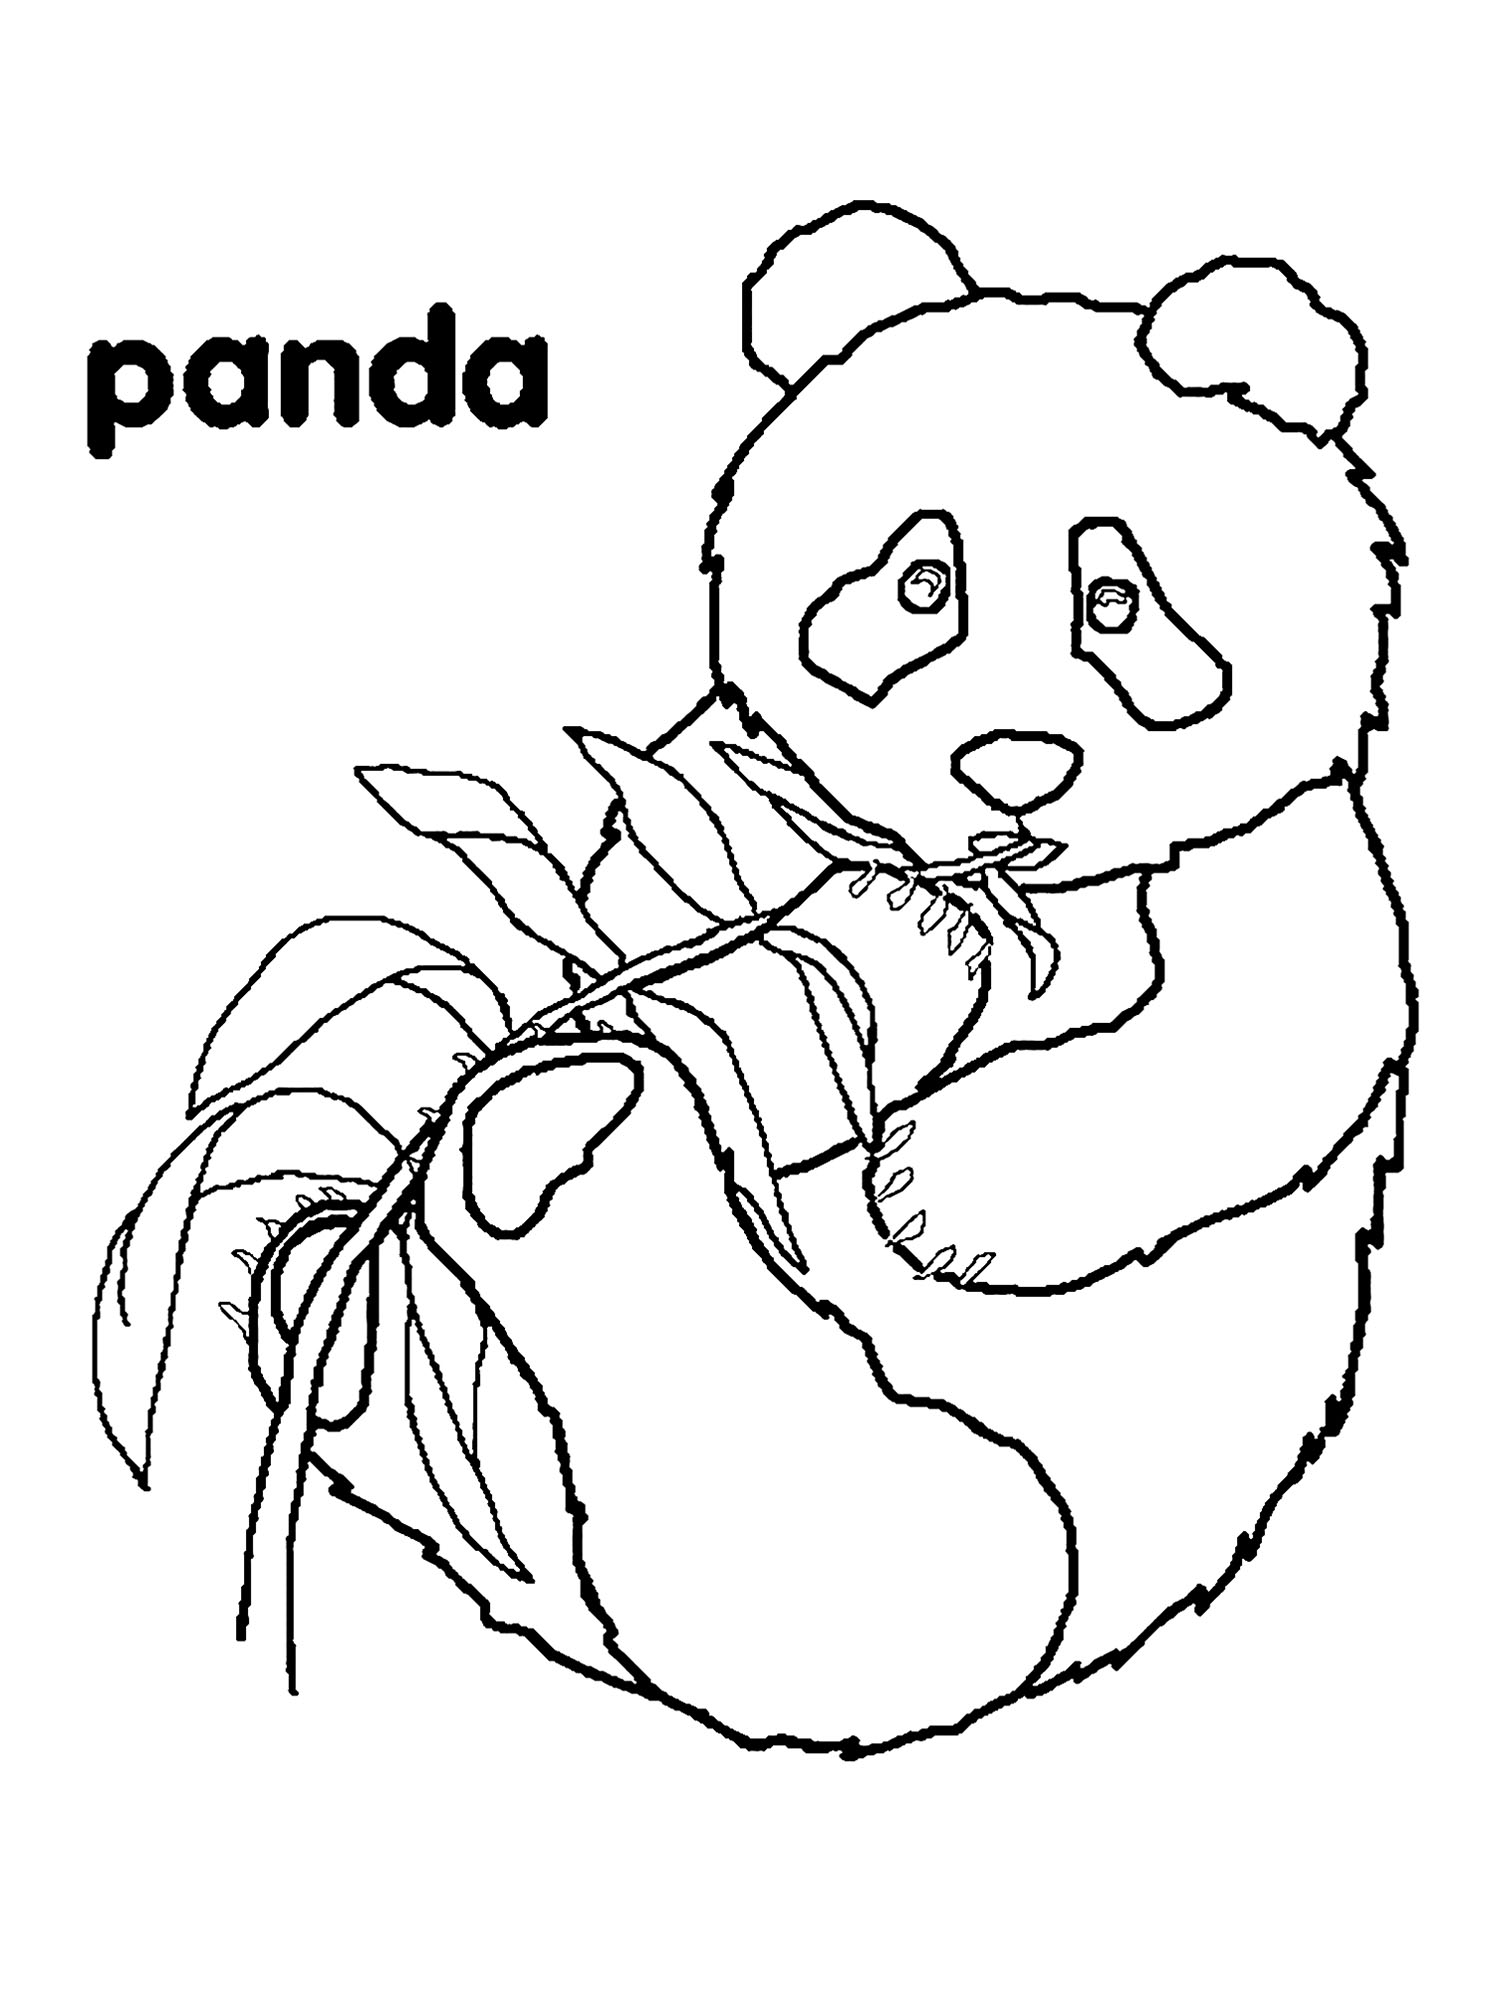 Cute free Pandas coloring page to download